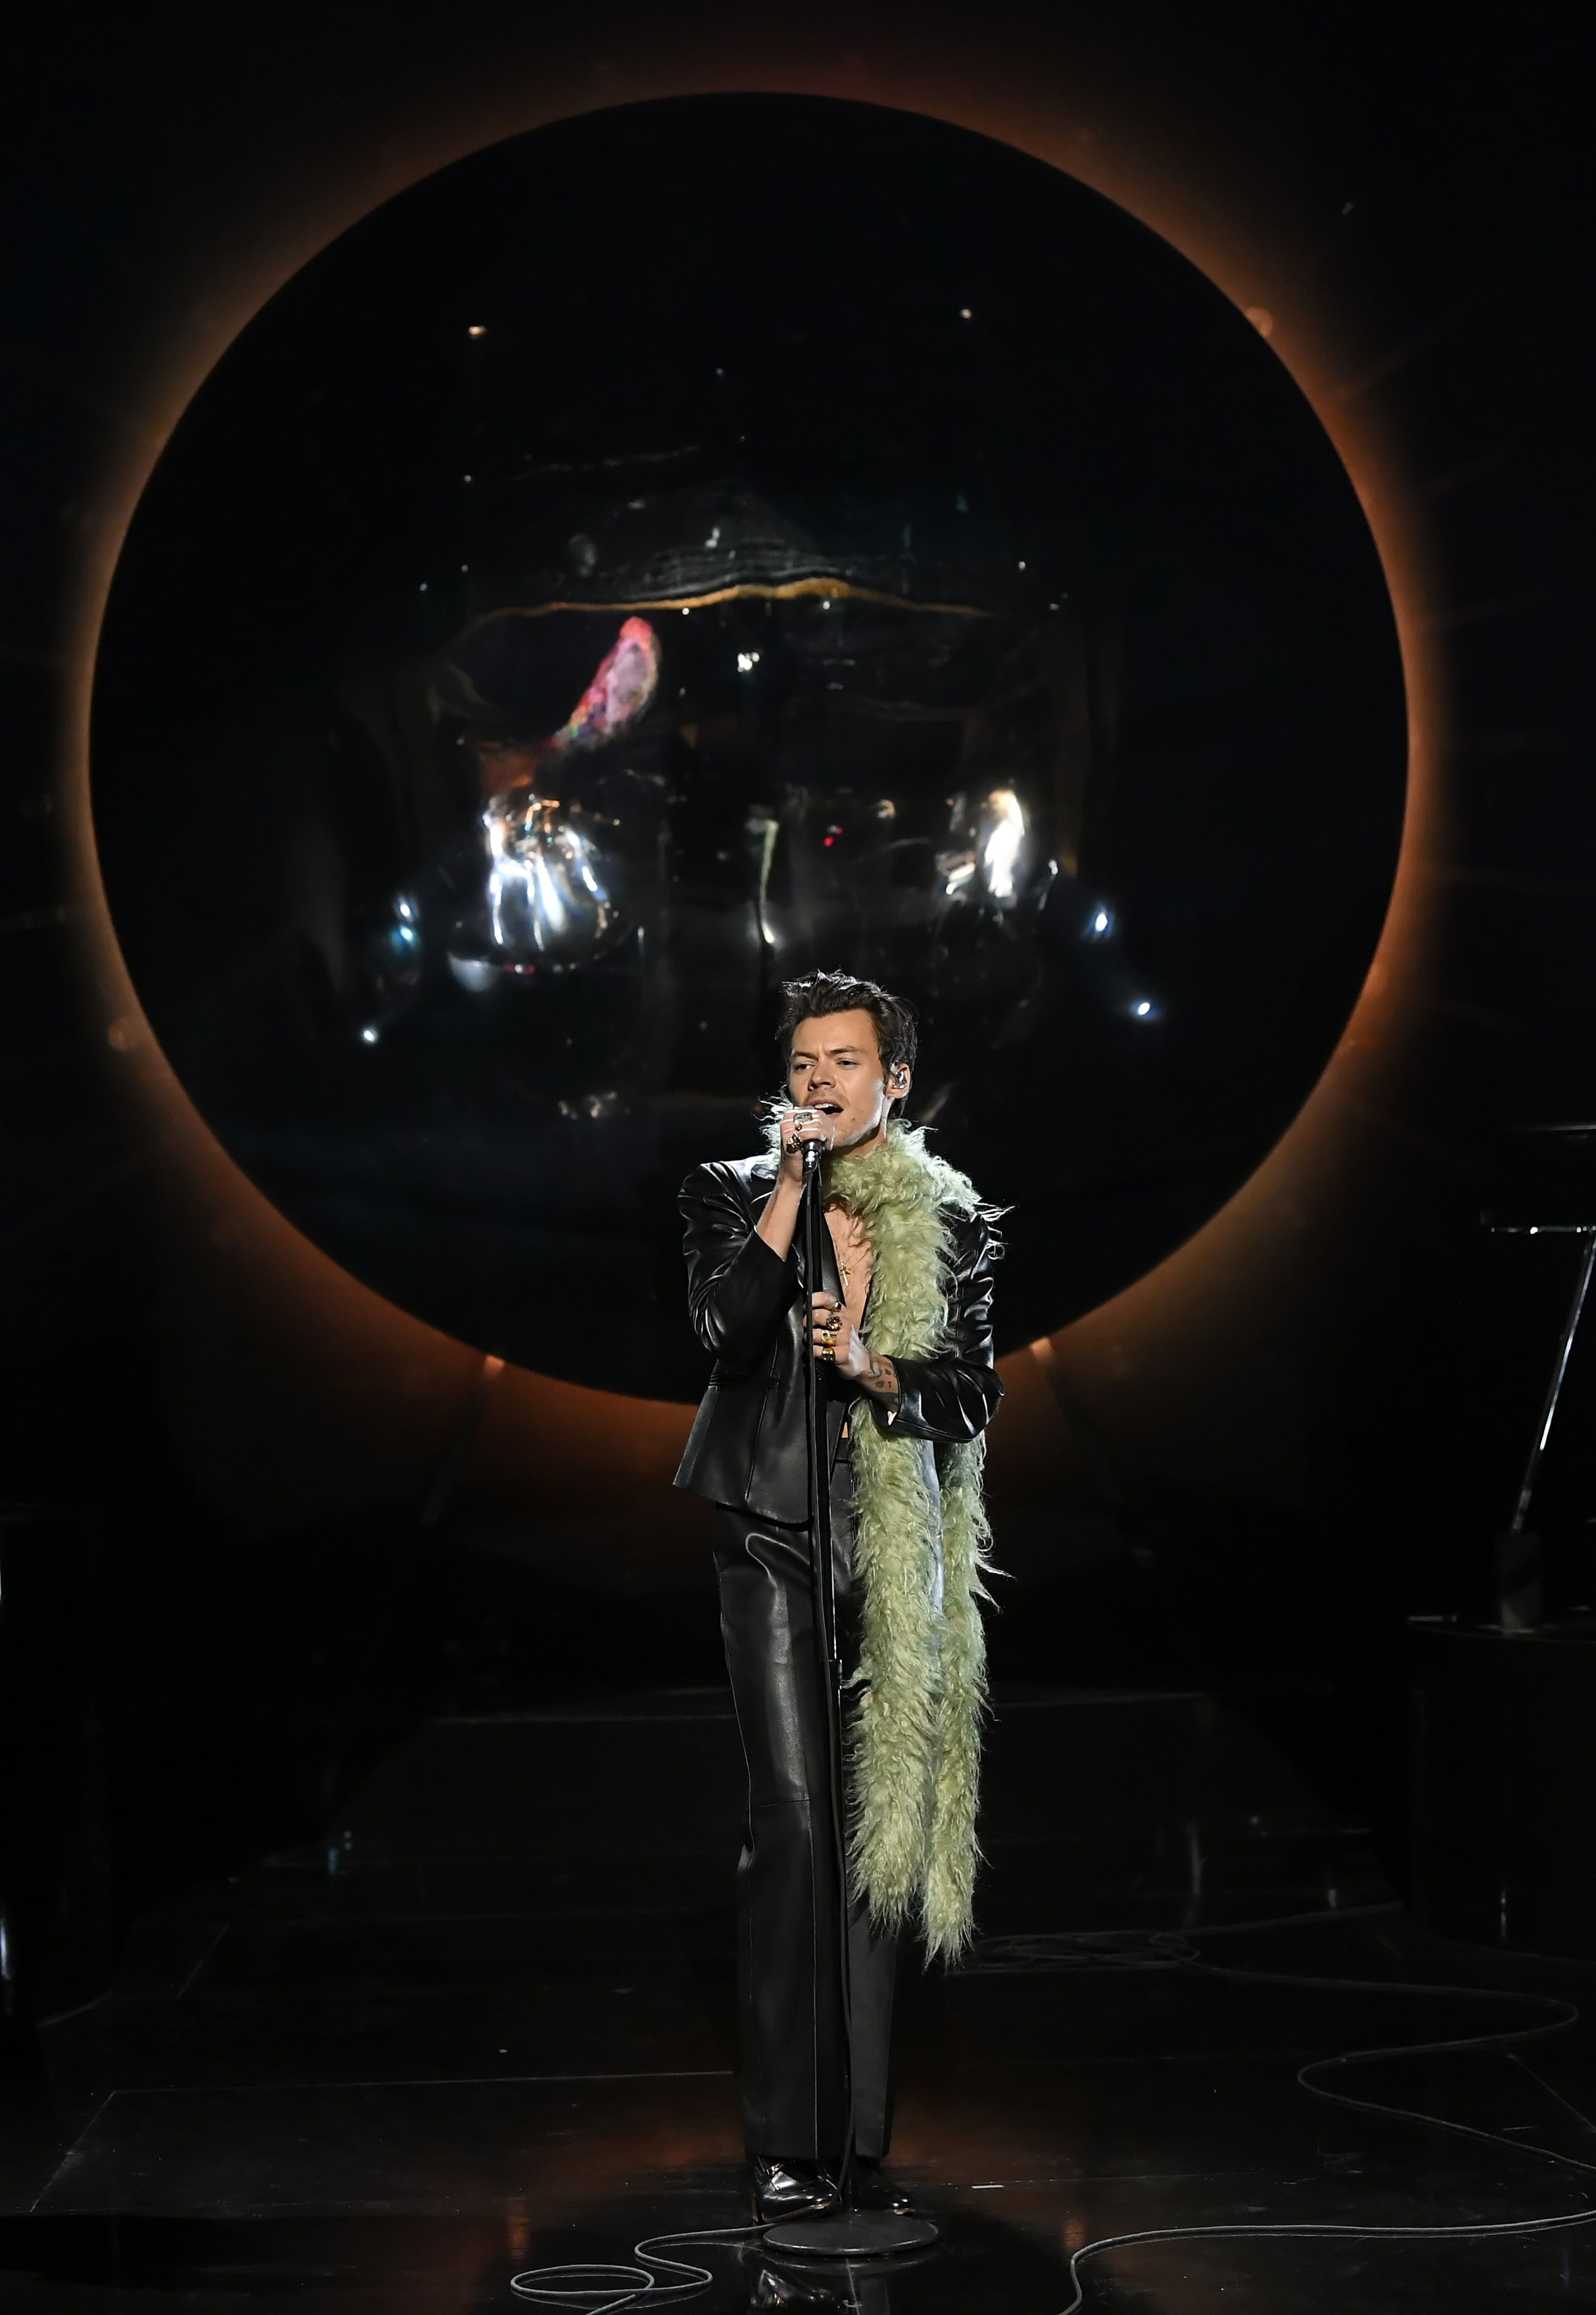 Help! I Saw Harry Styles's Grammys Performance, and I Can't Get Up!